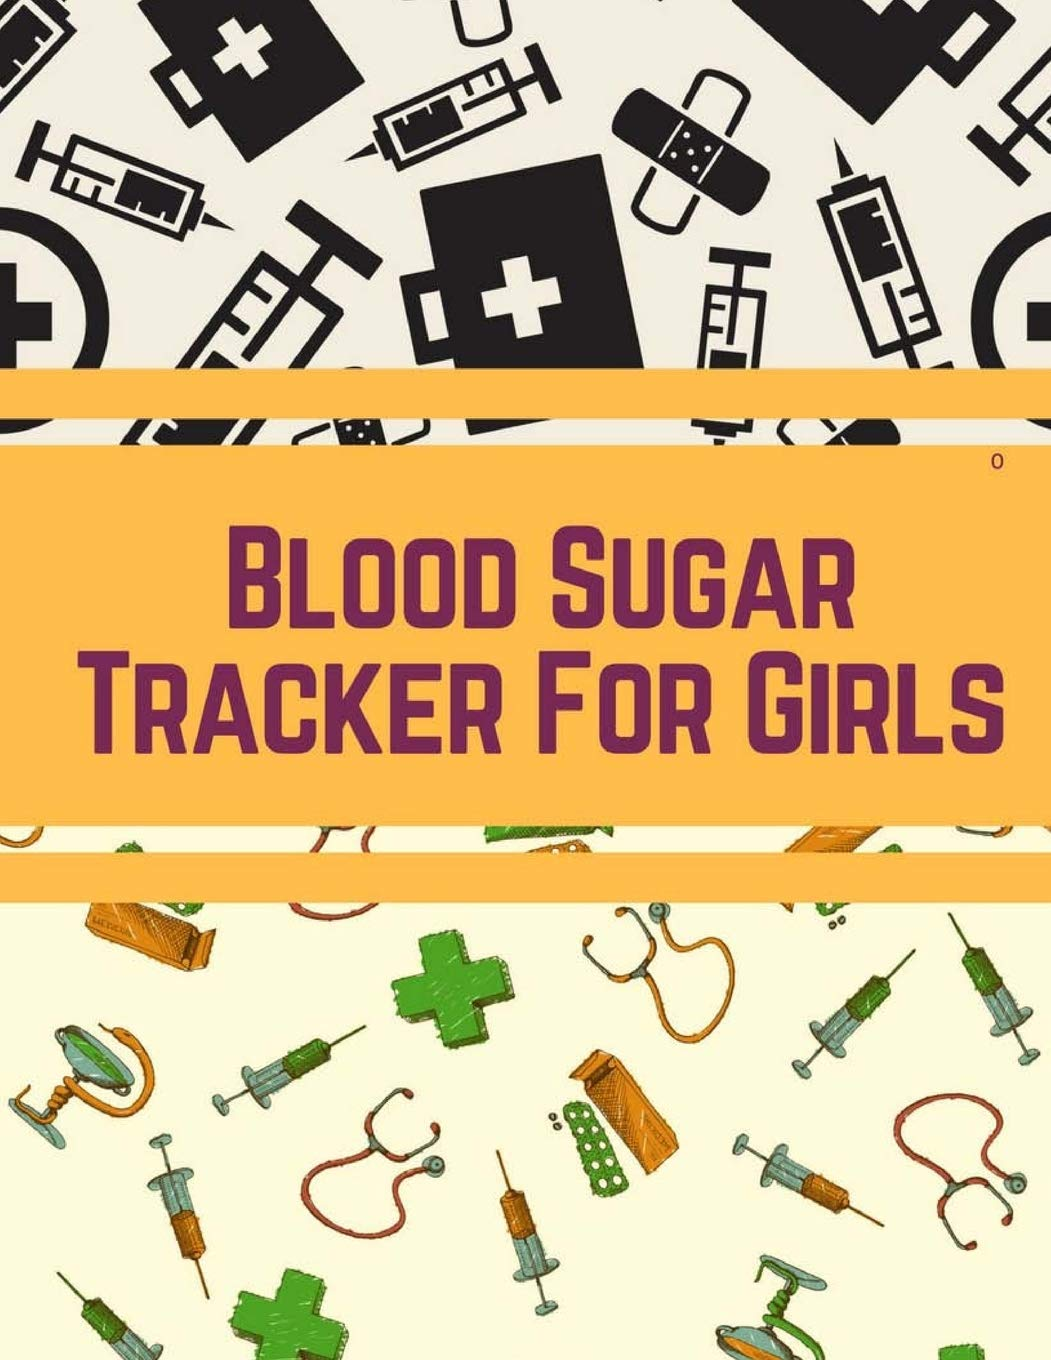 Blood Sugar Tracker For Girls Blood Sugar Diary Diabetes For Girls Journal Blood Sugar Level Chart 100 Record Pages For Girls 8 5 In By 11 In Watts Frankie 9781725063112 Amazon Com Books